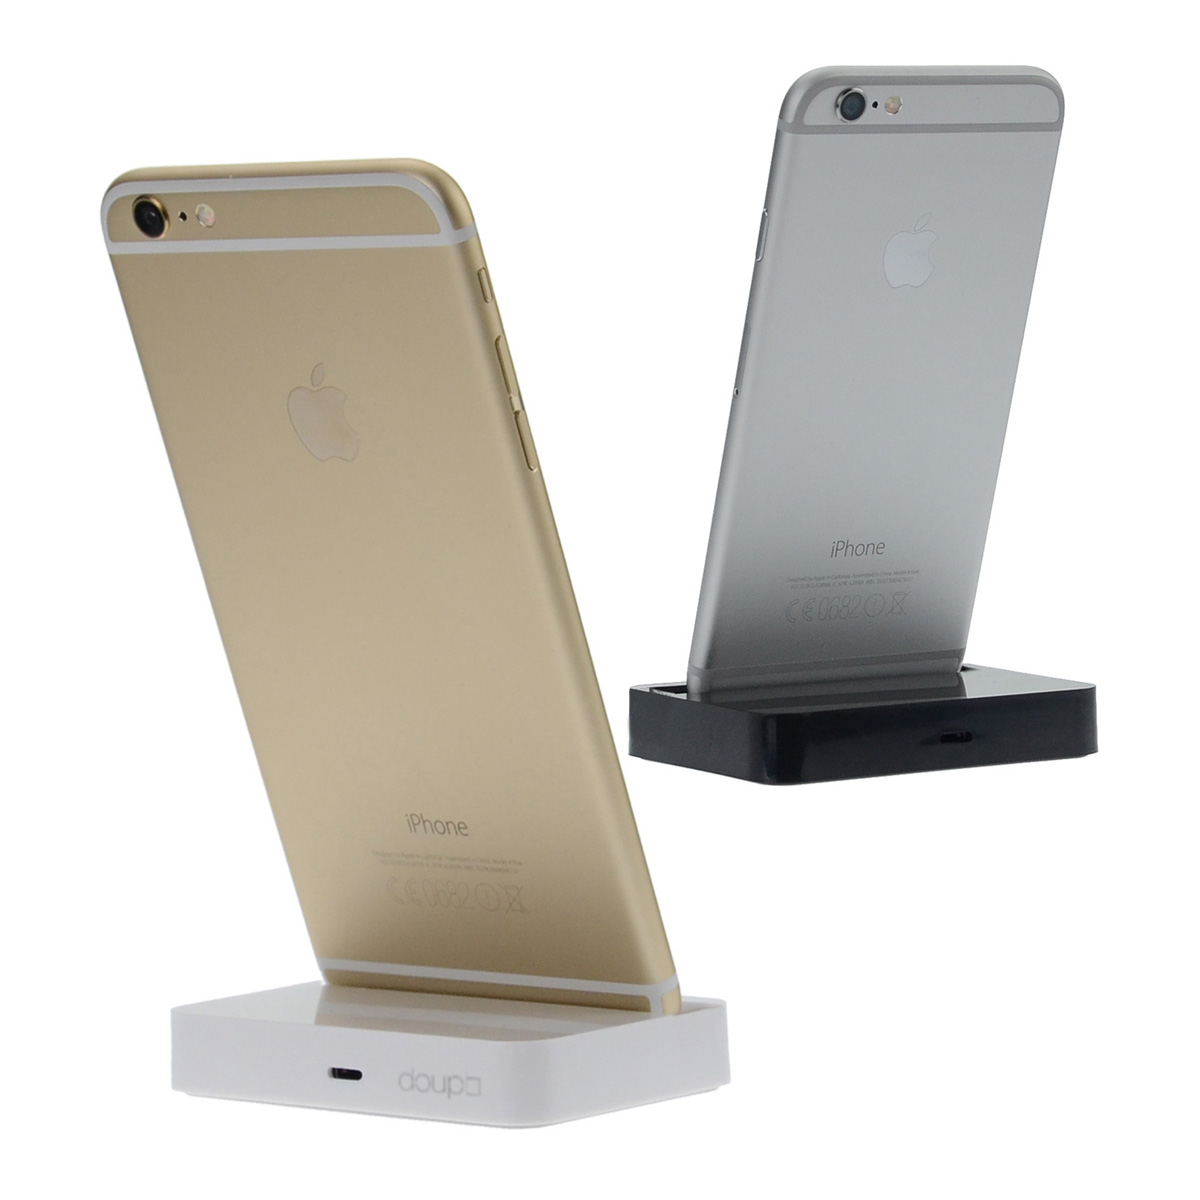 dock docking station iphone 6 6s plus 5 5c 5s se loading. Black Bedroom Furniture Sets. Home Design Ideas